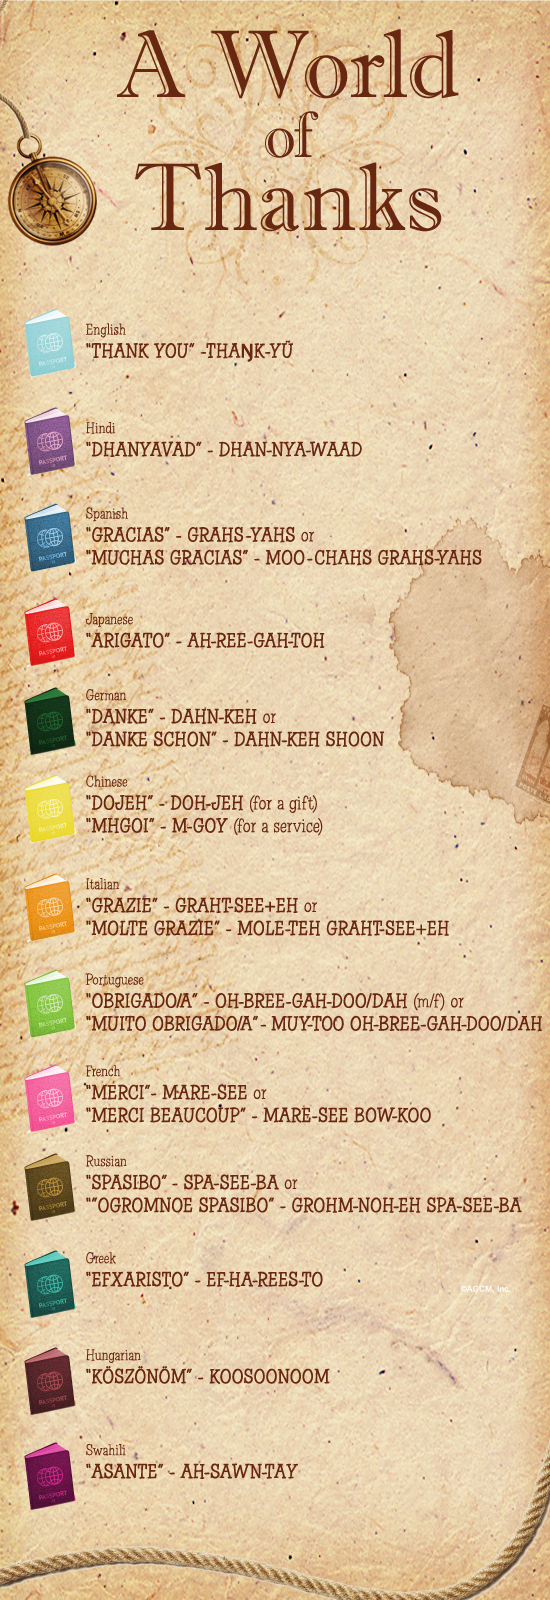 """Infographic detailing how to say """"Thank You"""" in different languages"""